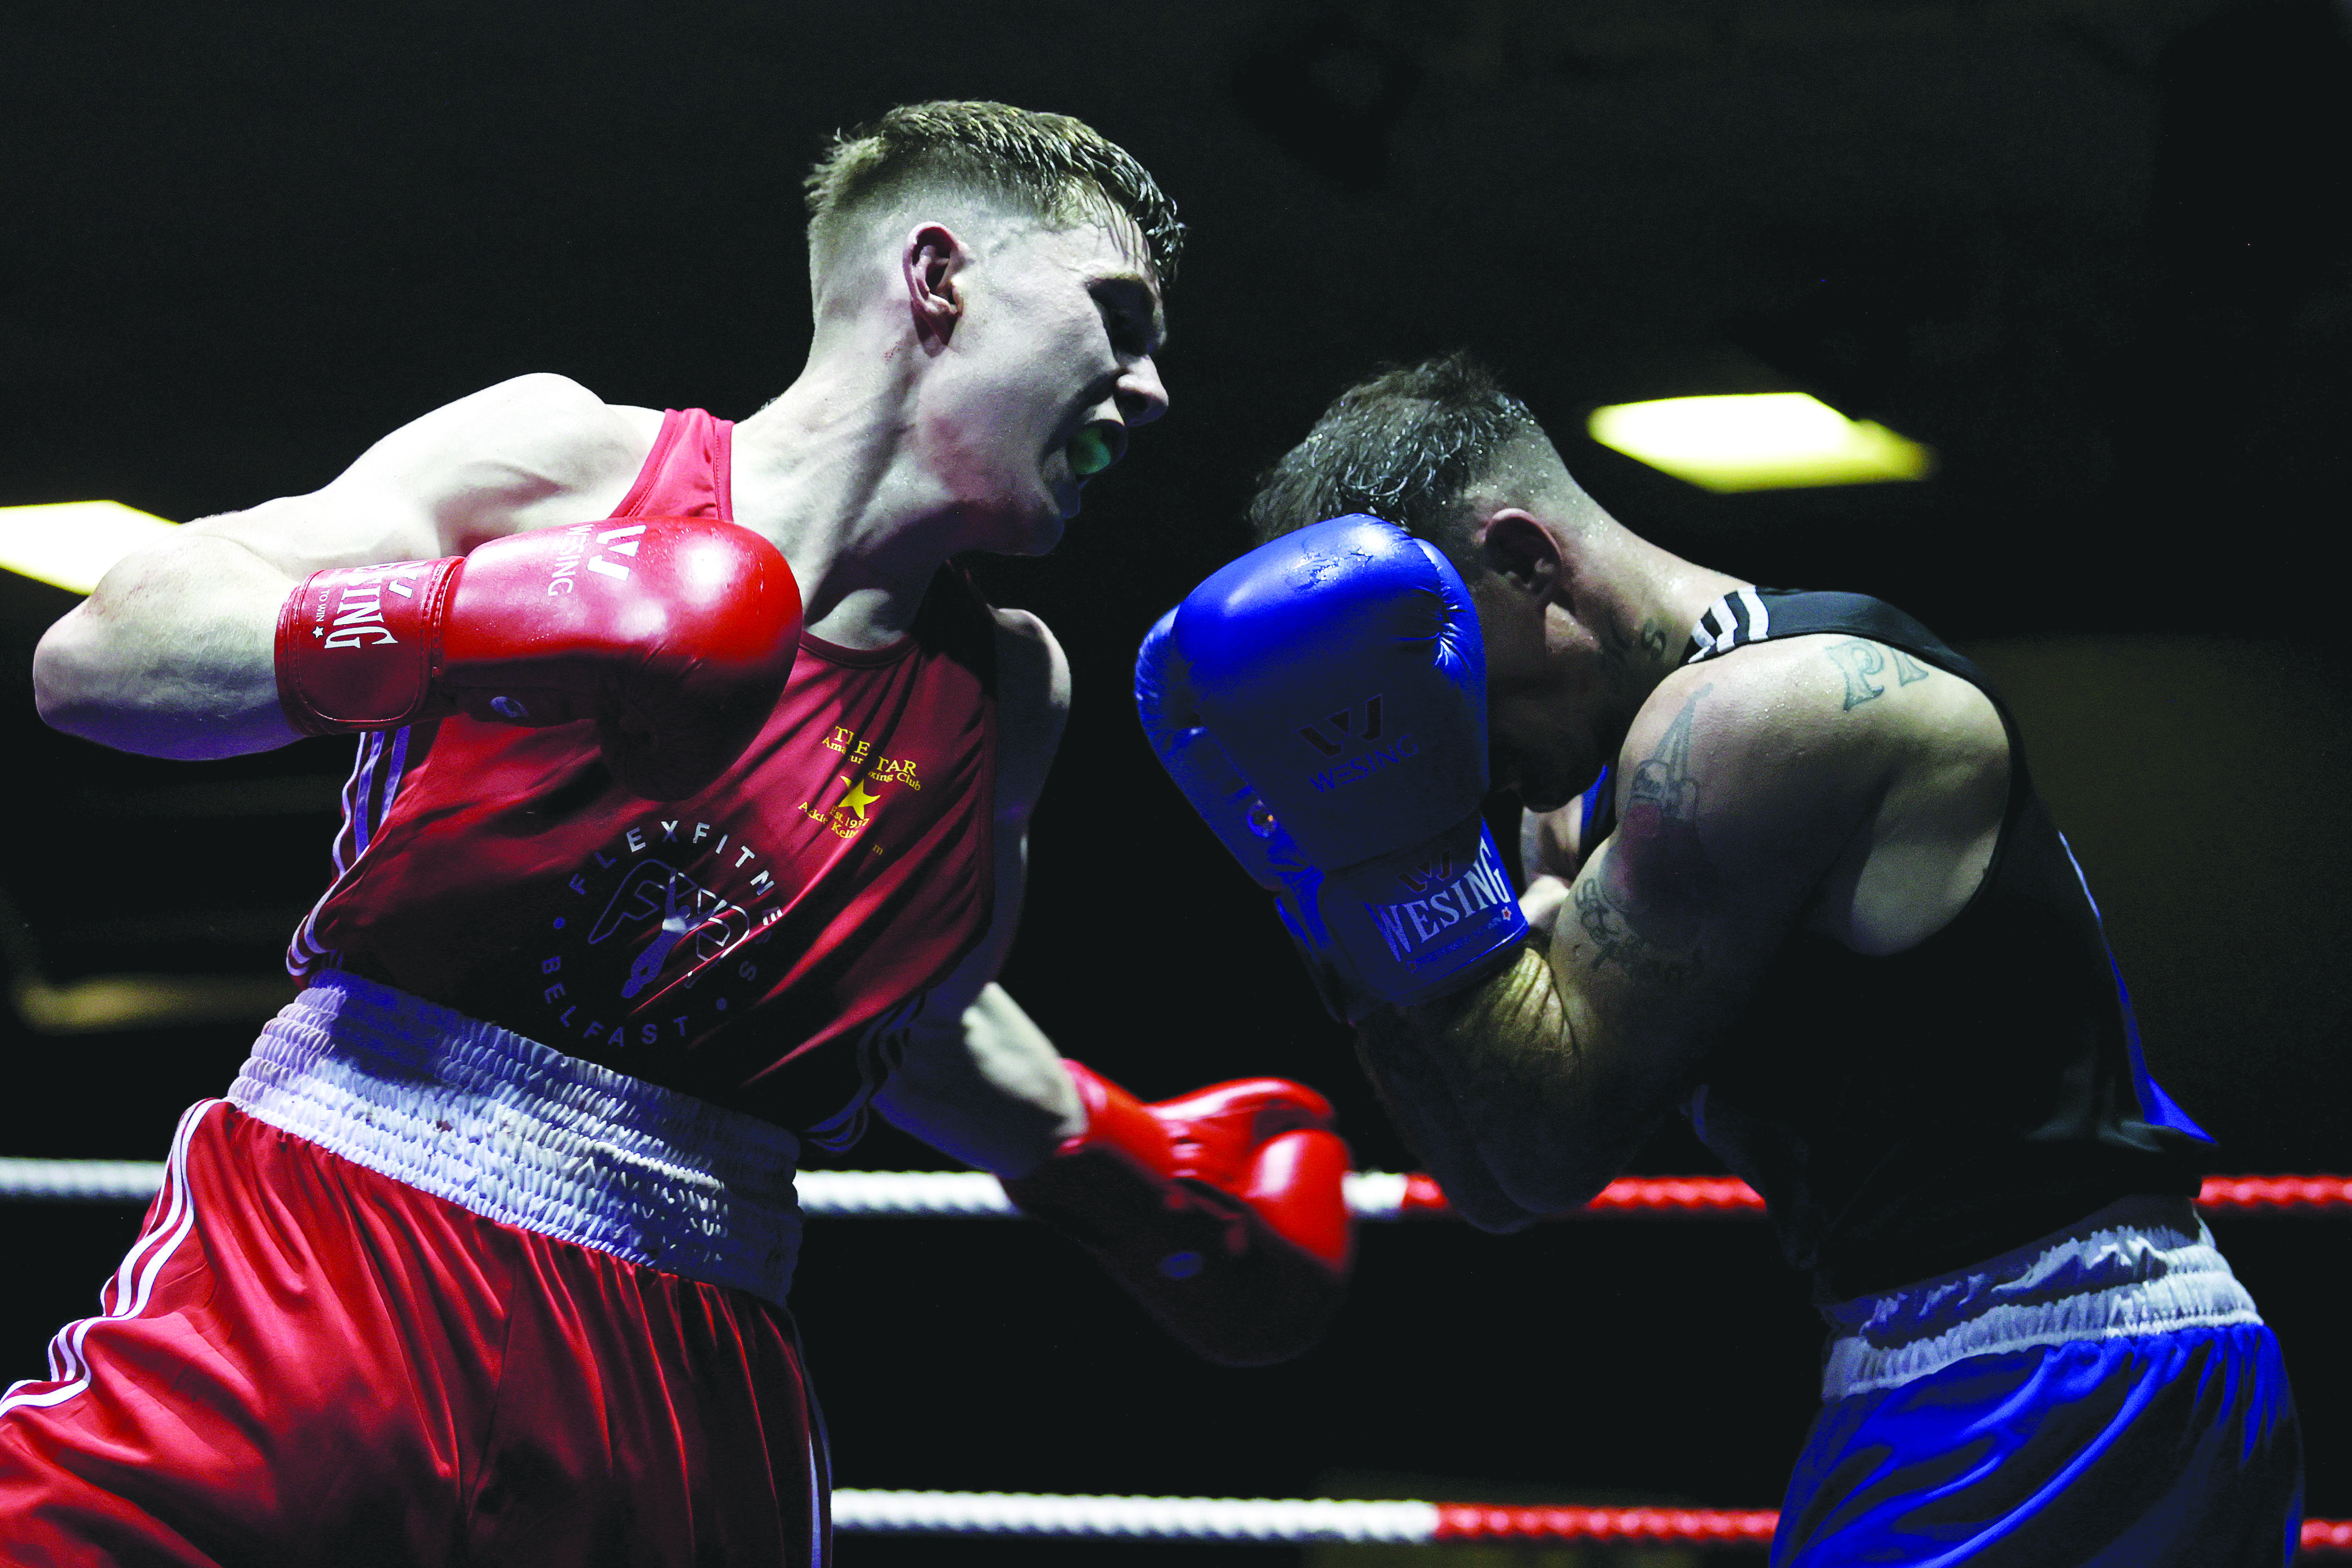 Star ABC's JP Hale in action against Michael Stephens in Friday's semi-final that set-up a lightweight final against Dominic Bradley. The finals will be broadcast live on TG4 this Saturday